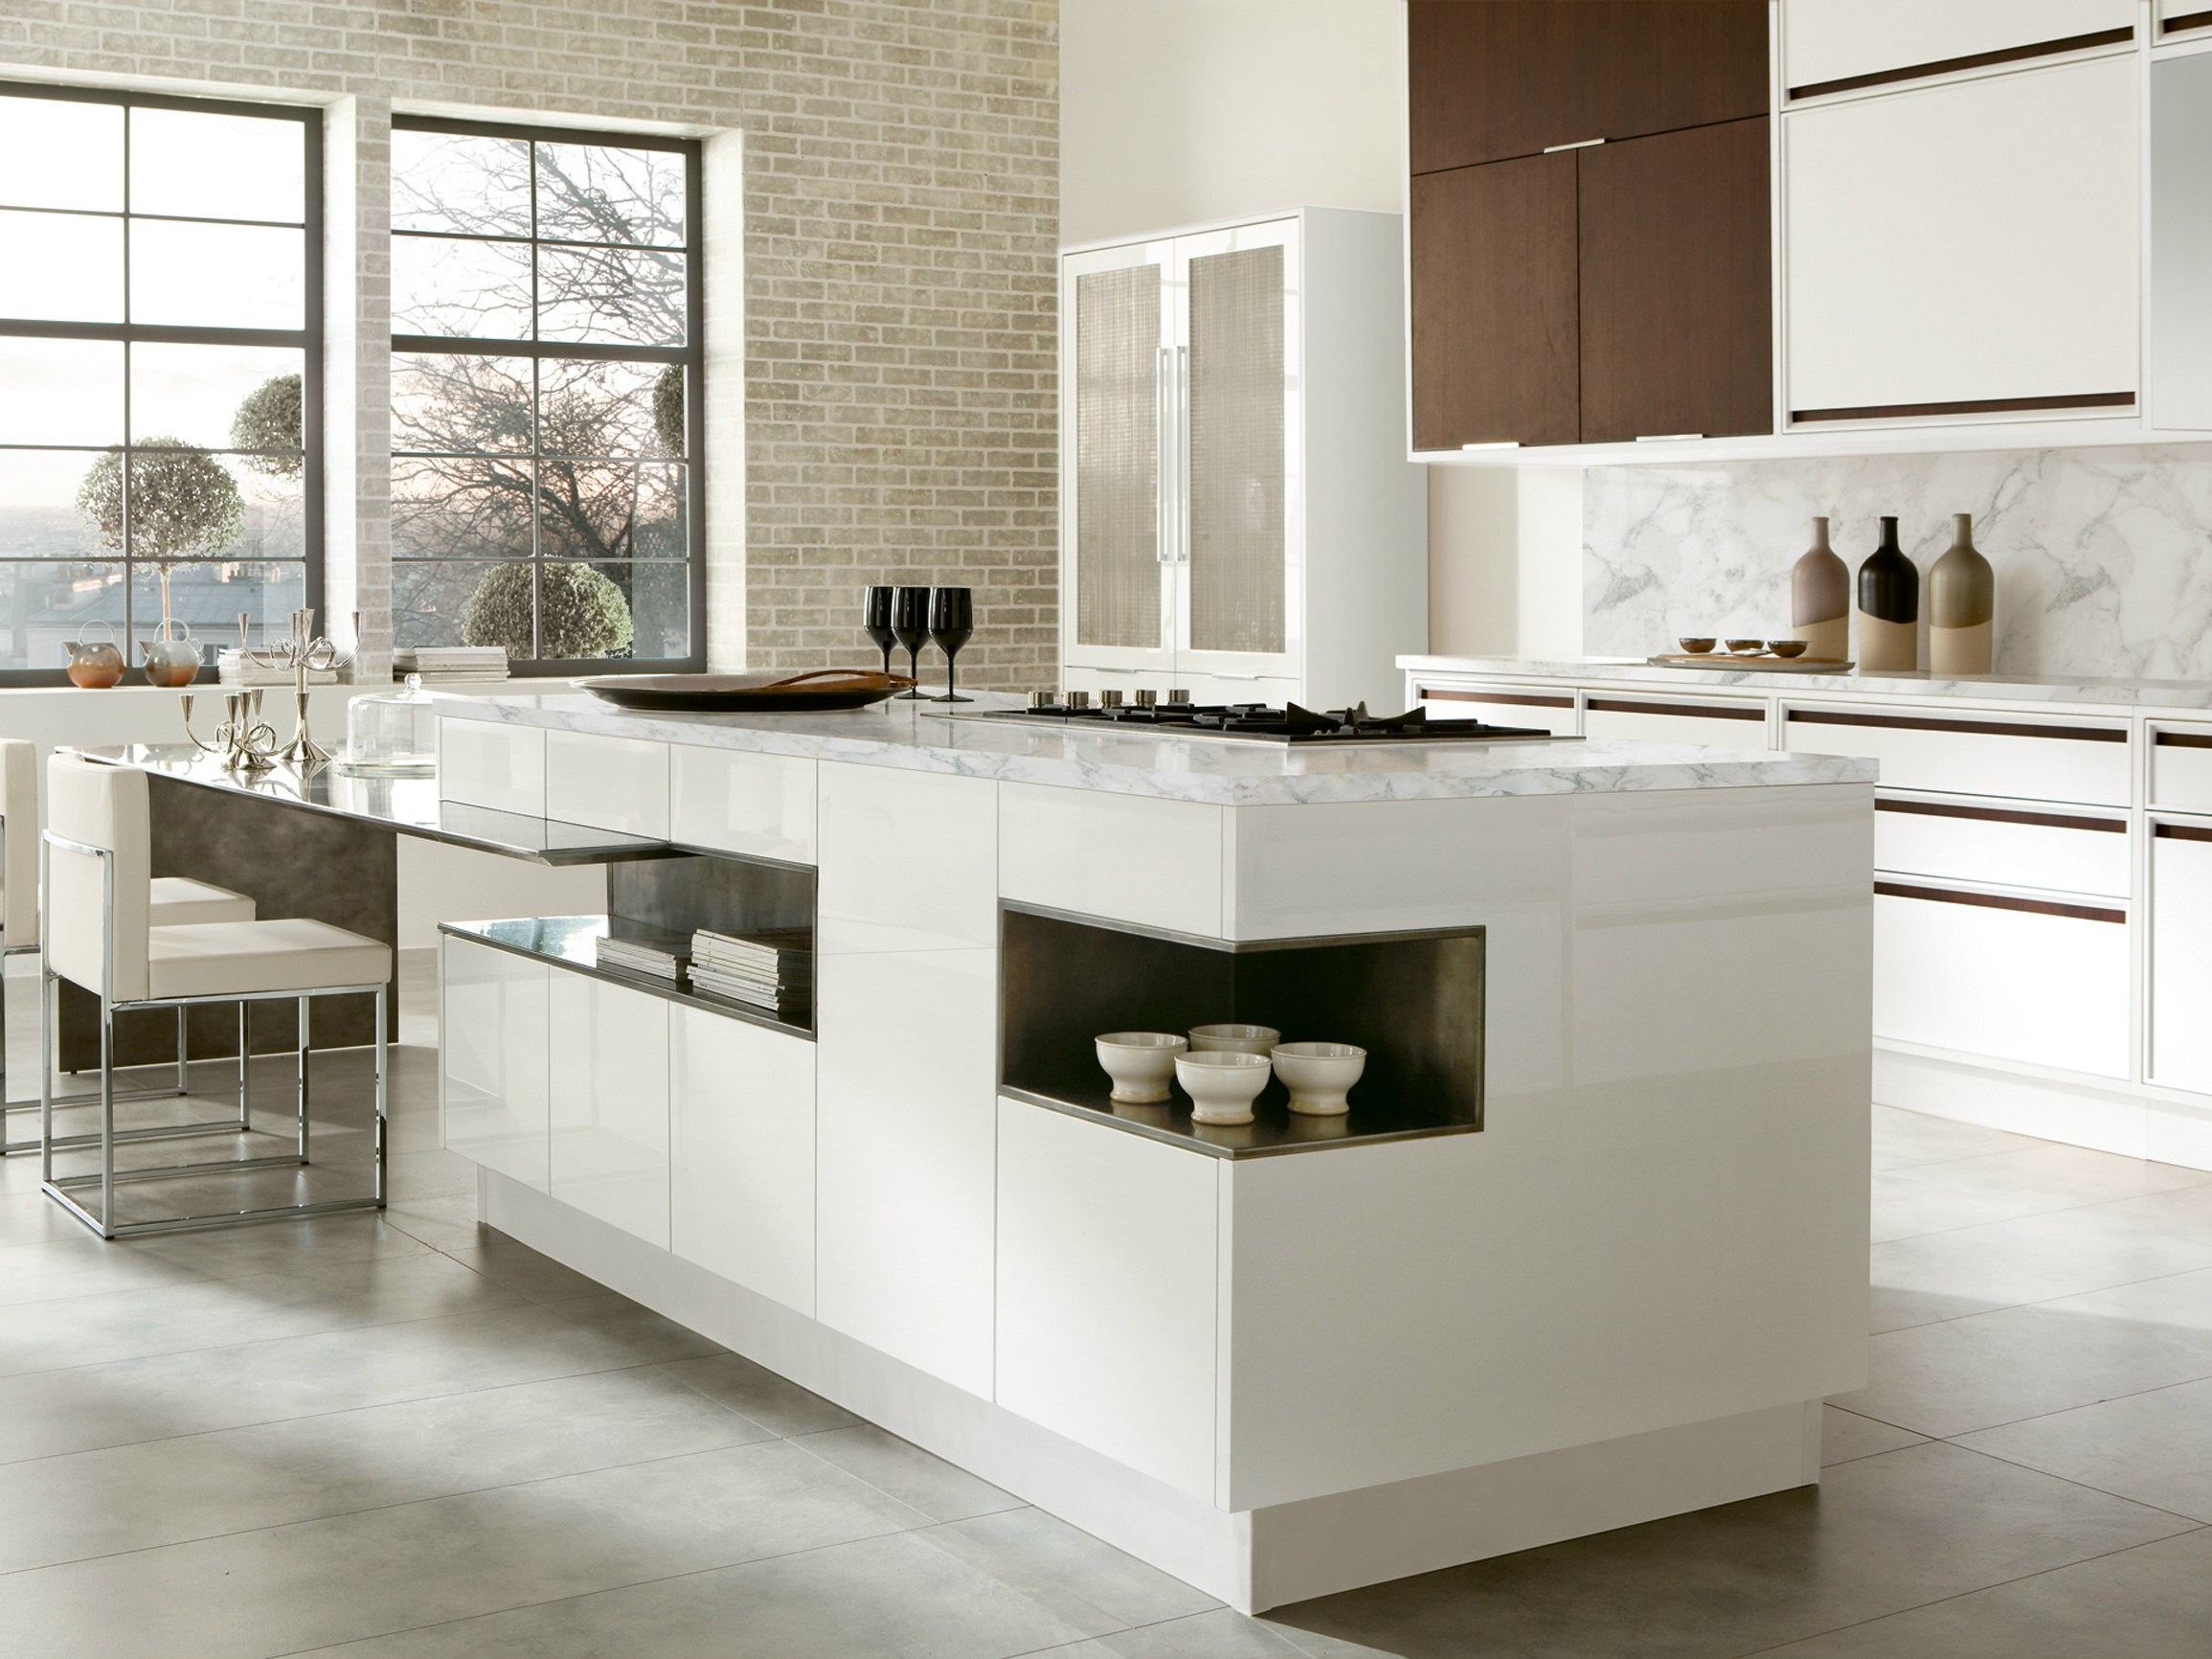 Timeline cucina con isola by aster cucine s p a for Cucine in legno con isola